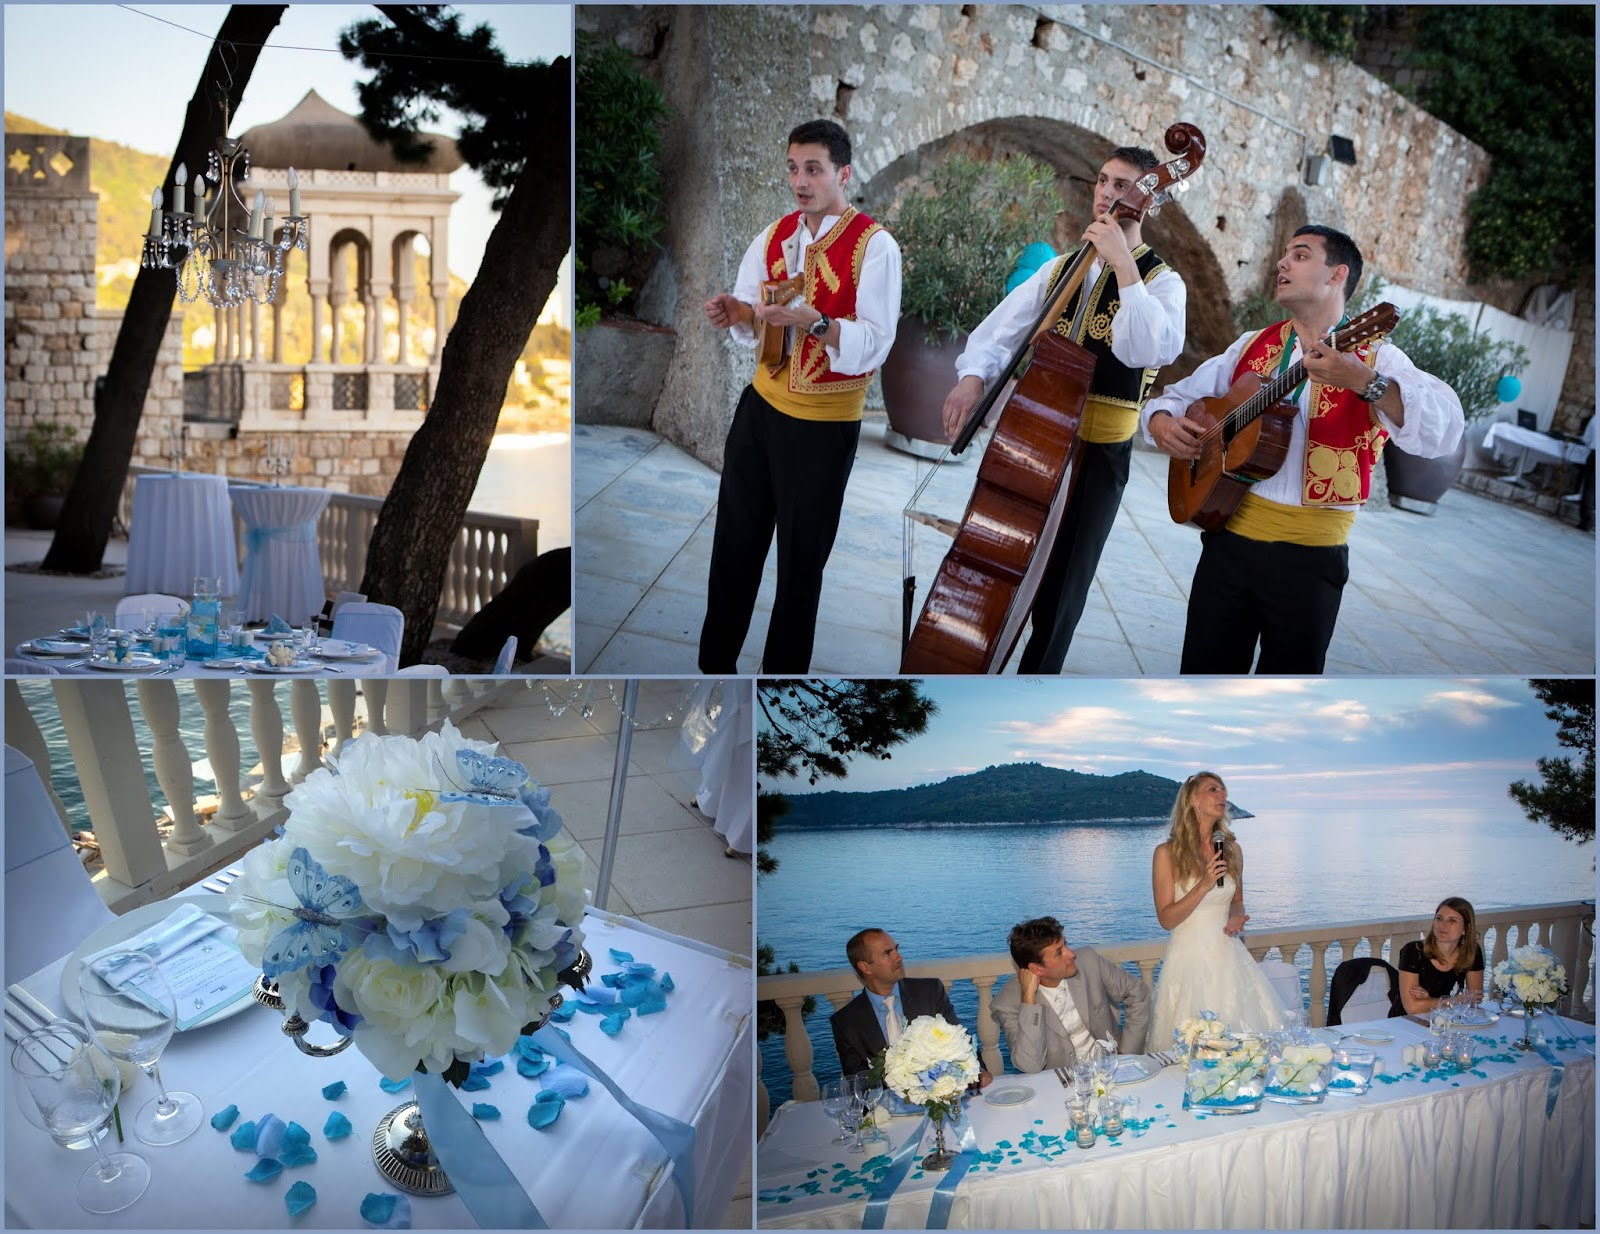 A magical setting for an outdoors dubrovnik wedding